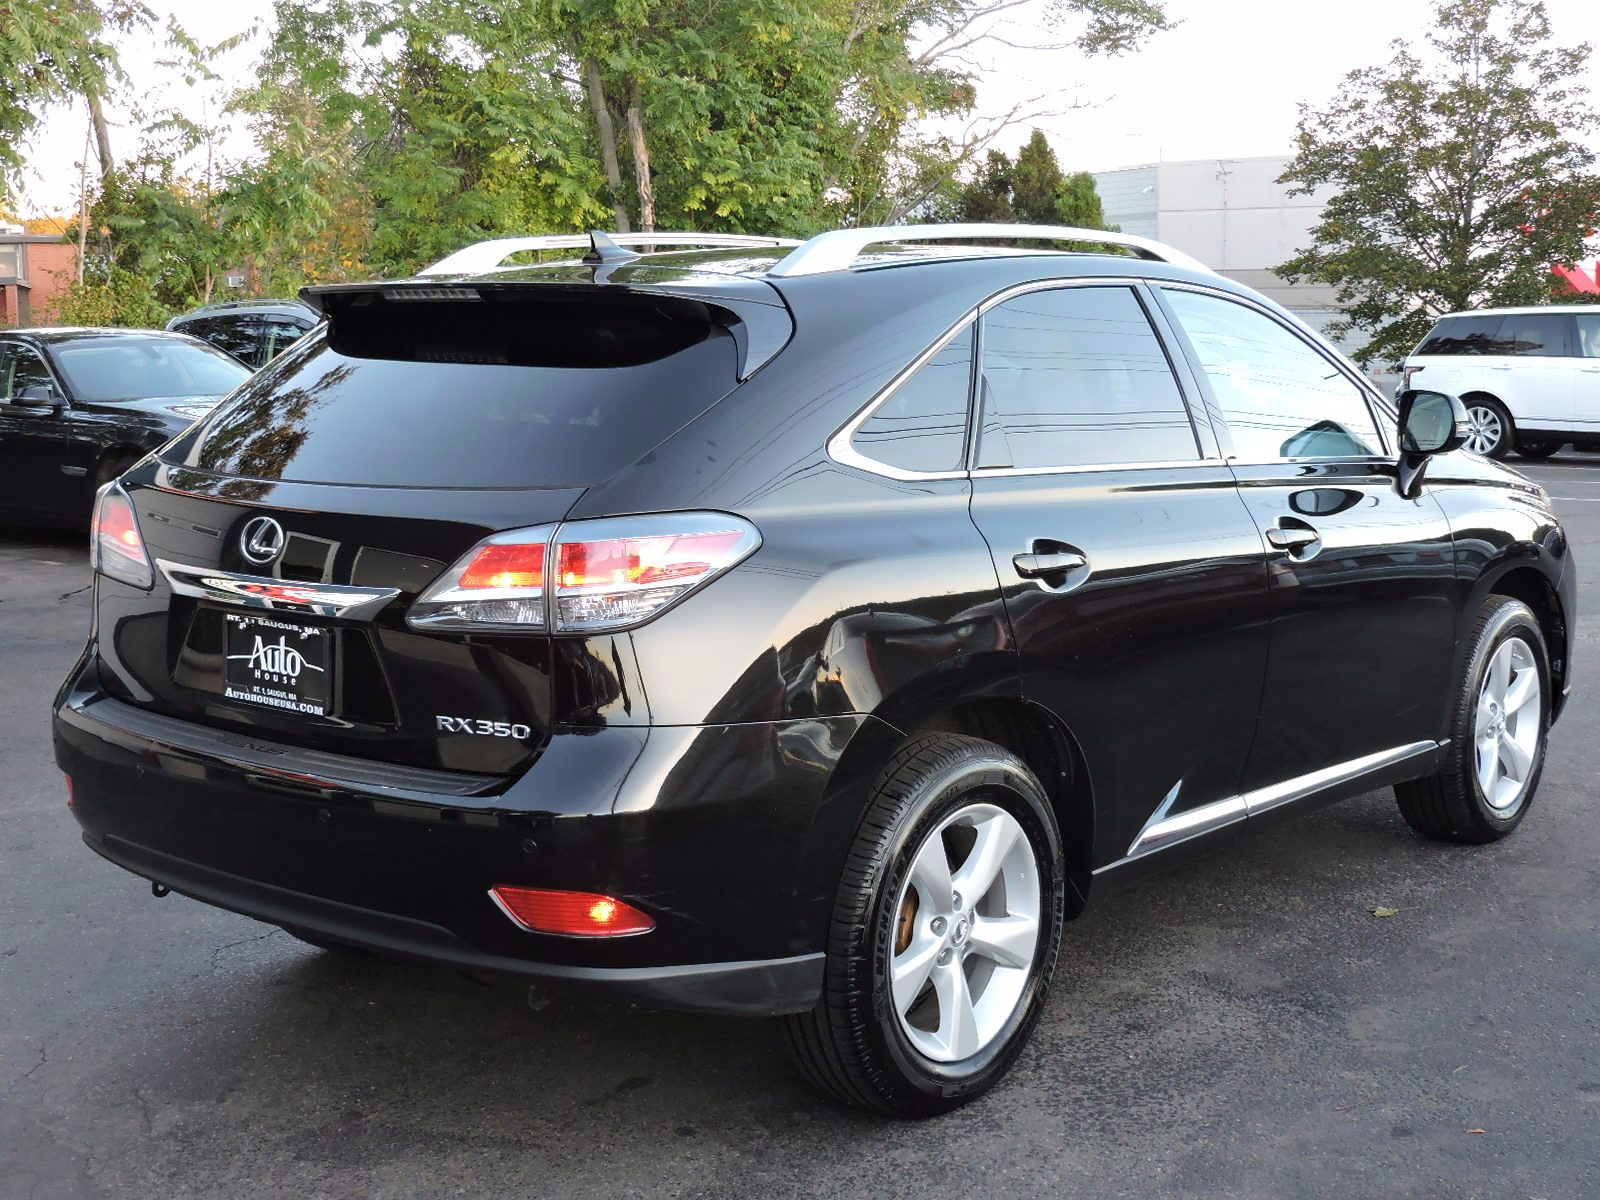 2013 Lexus RX 350 - All Wheel Drive - Navigation